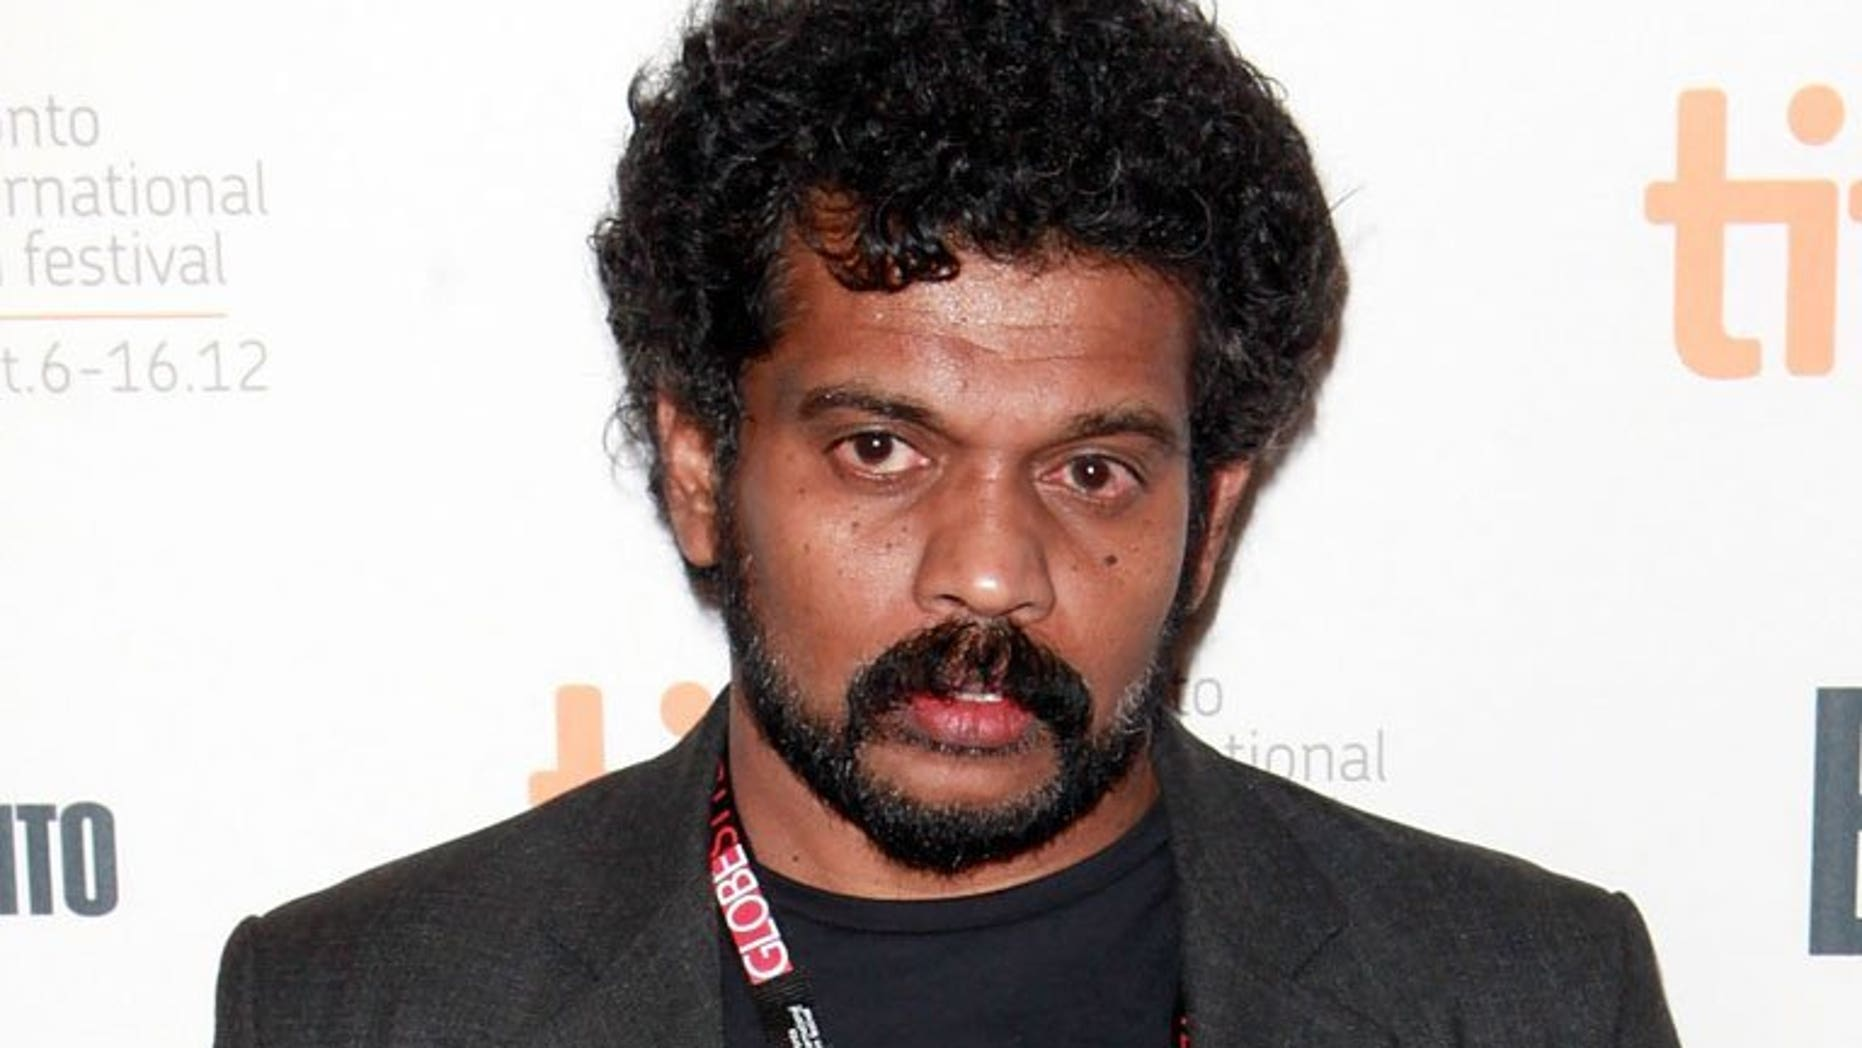 """Director Asoka Handagama attends the Toronto International Film Festival on September 7, 2012 in Canada. Handagama's latest film """"Ini Avan"""" explores the aftermath of the 26-year Sri Lankan civil war following its """"catastrophic"""" end four years ago."""